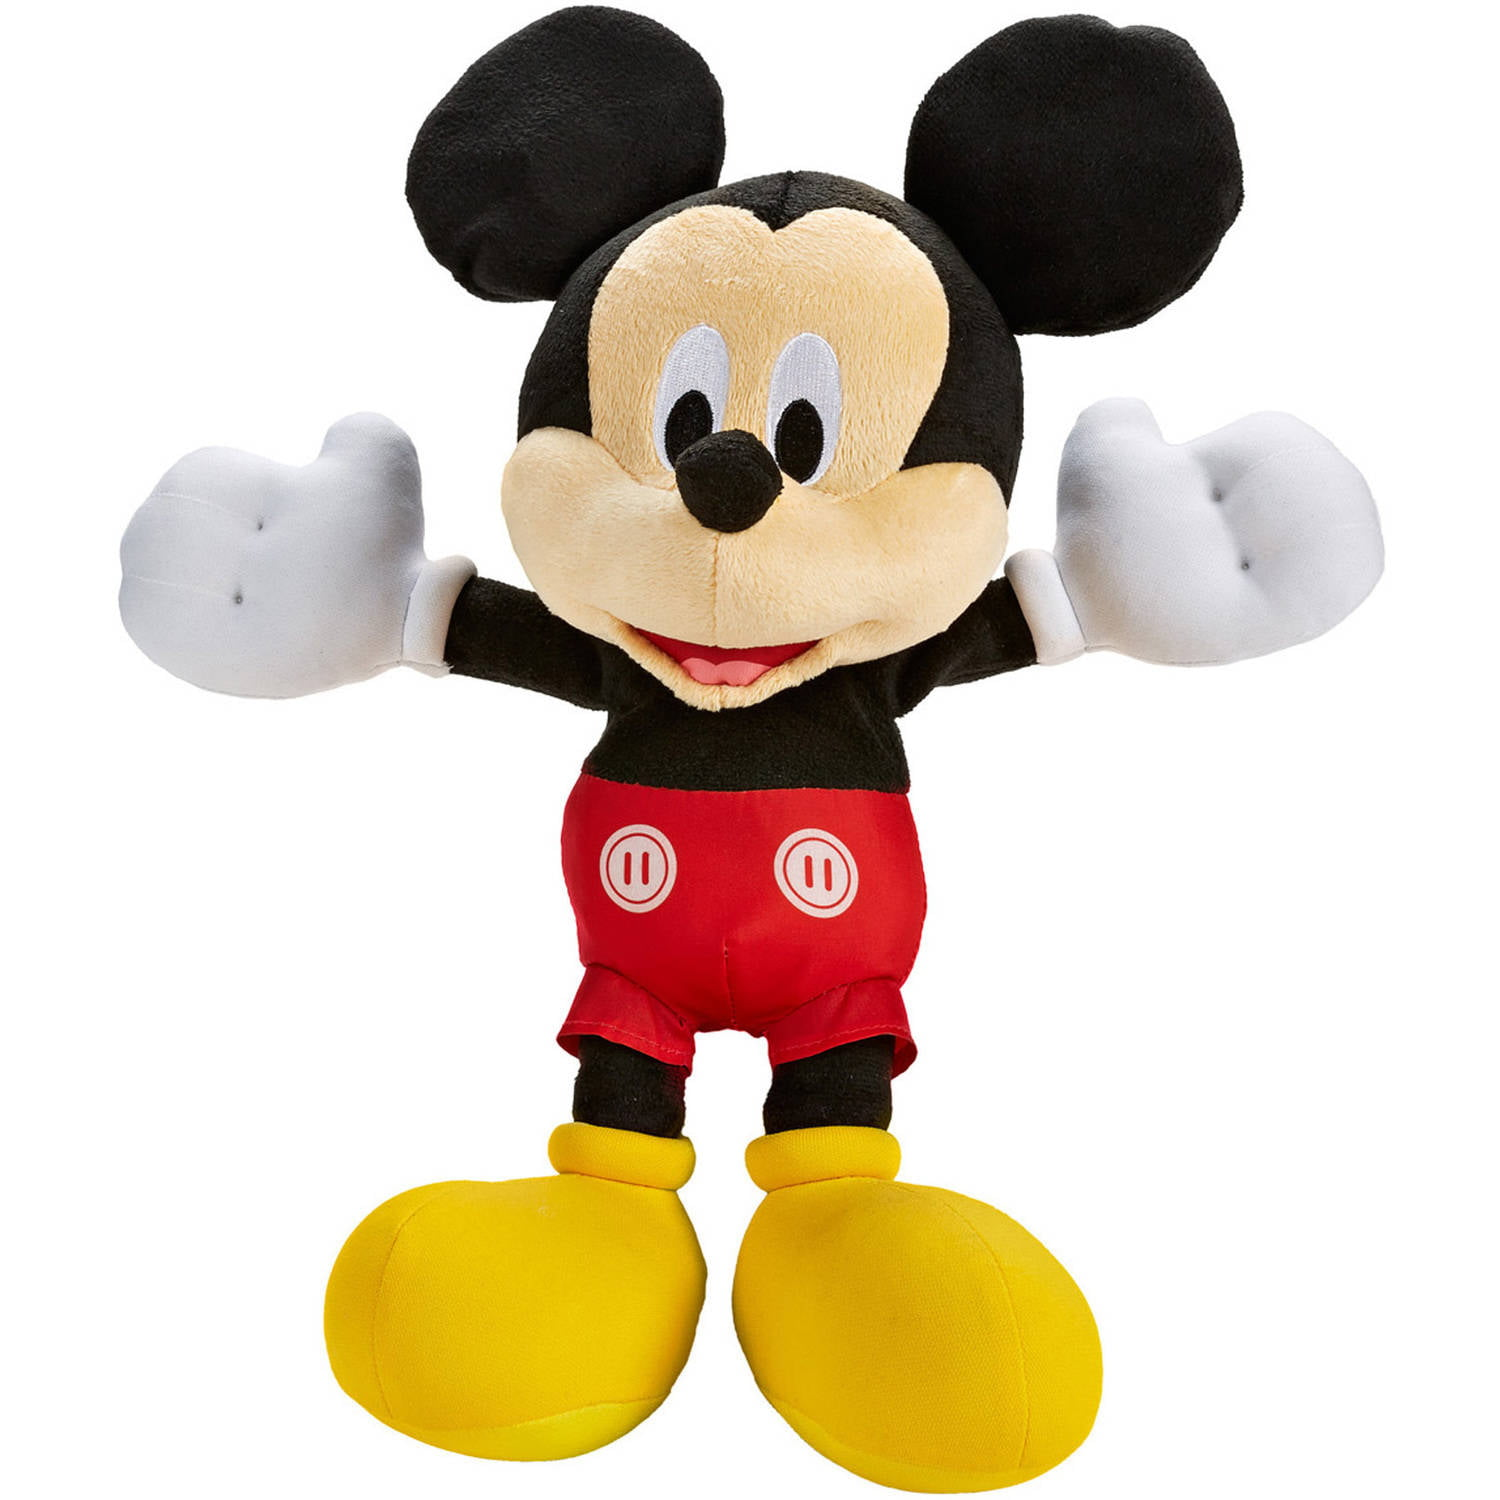 Disney Mickey Mouse | www.pixshark.com - Images Galleries With A Bite!